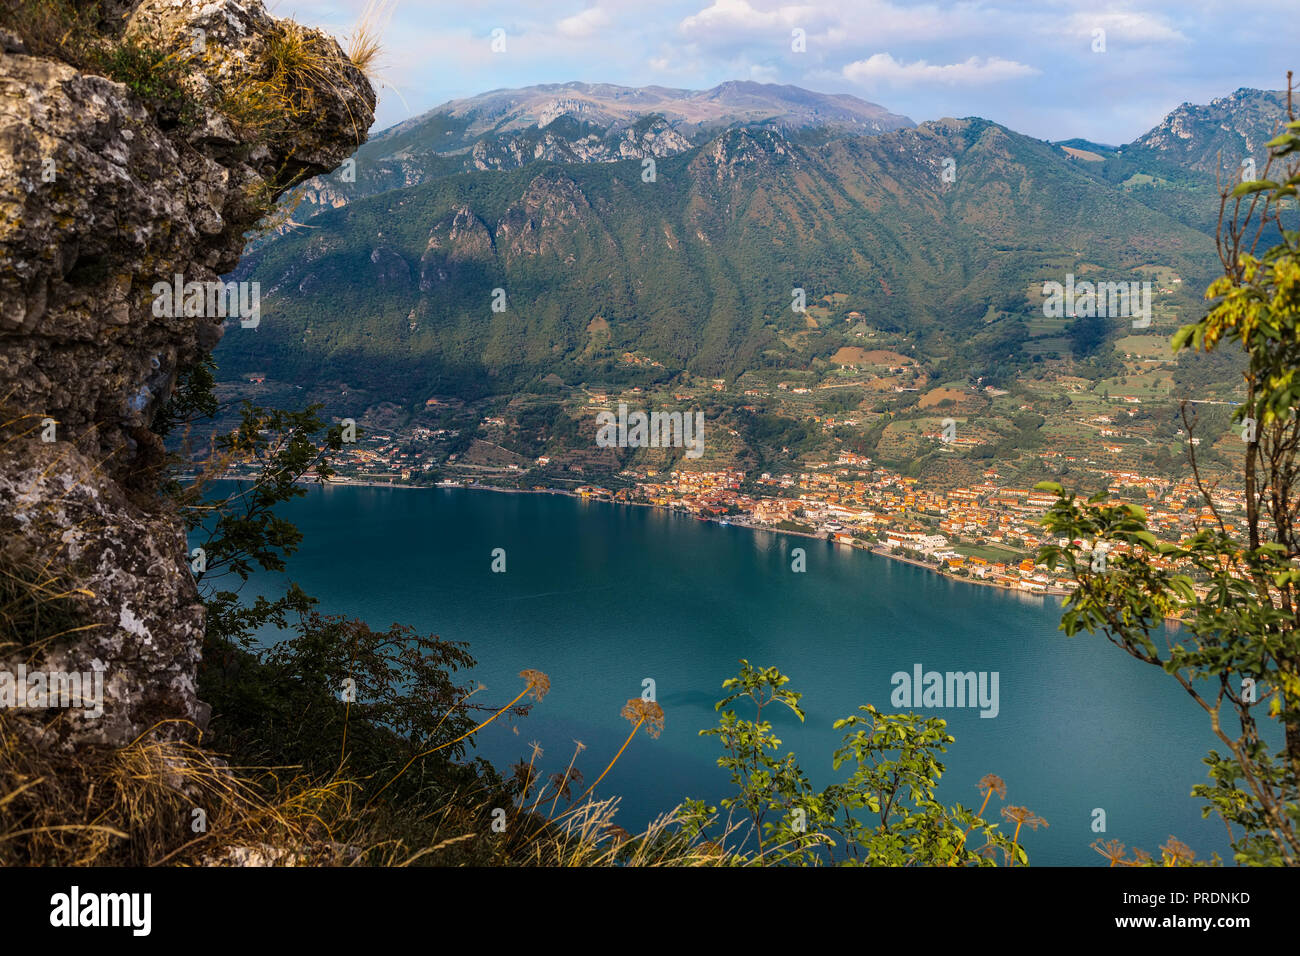 View from the island Monte Isola on Lake Iseo and Kommunu Sale Marazino. Italy - Stock Image